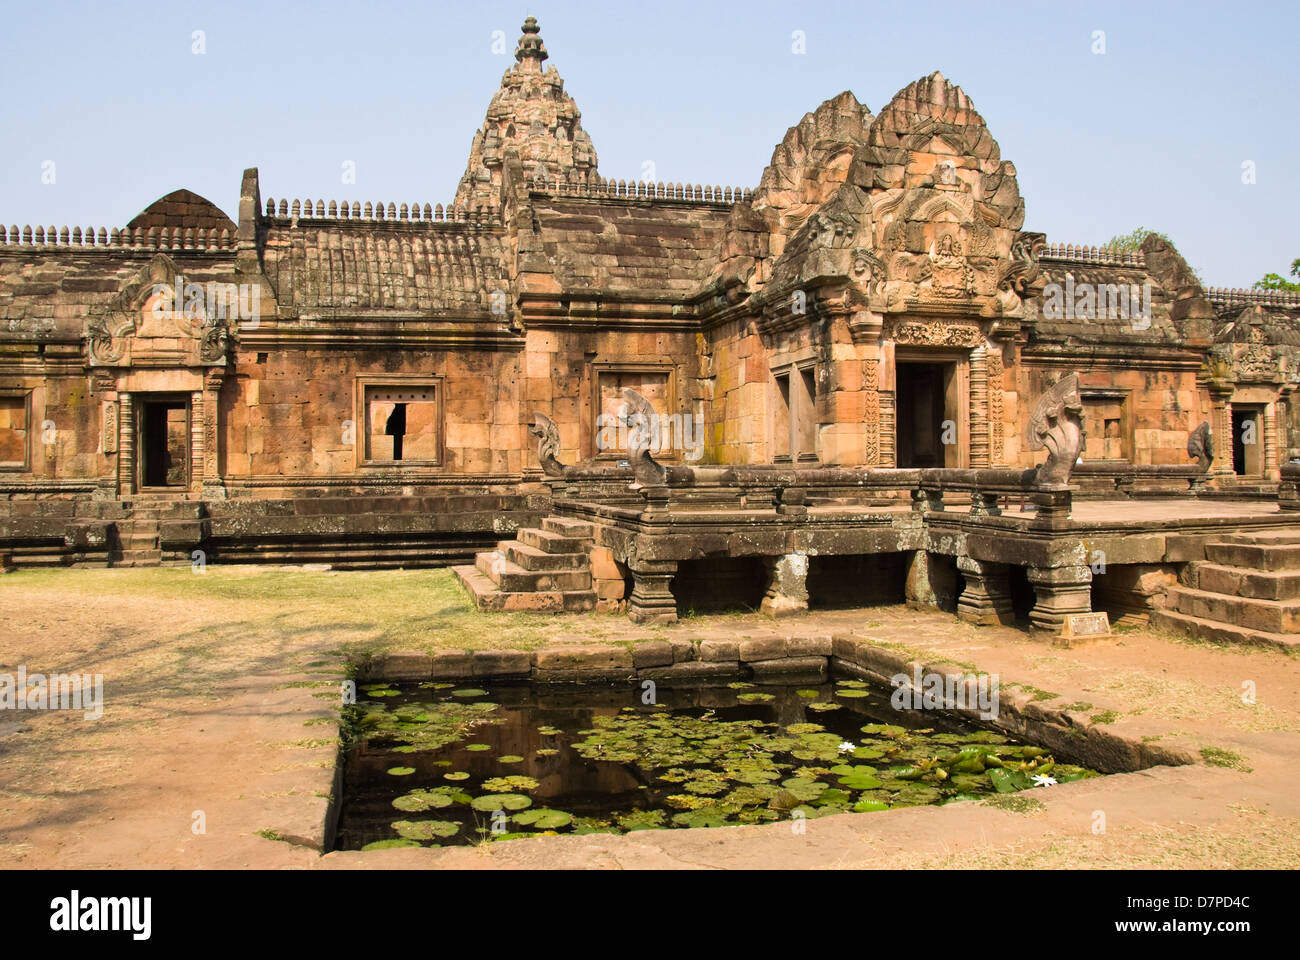 Wat Prasat Muang Tam, Palace of the lower city, Palast der unteren Stadt, - Stock Image